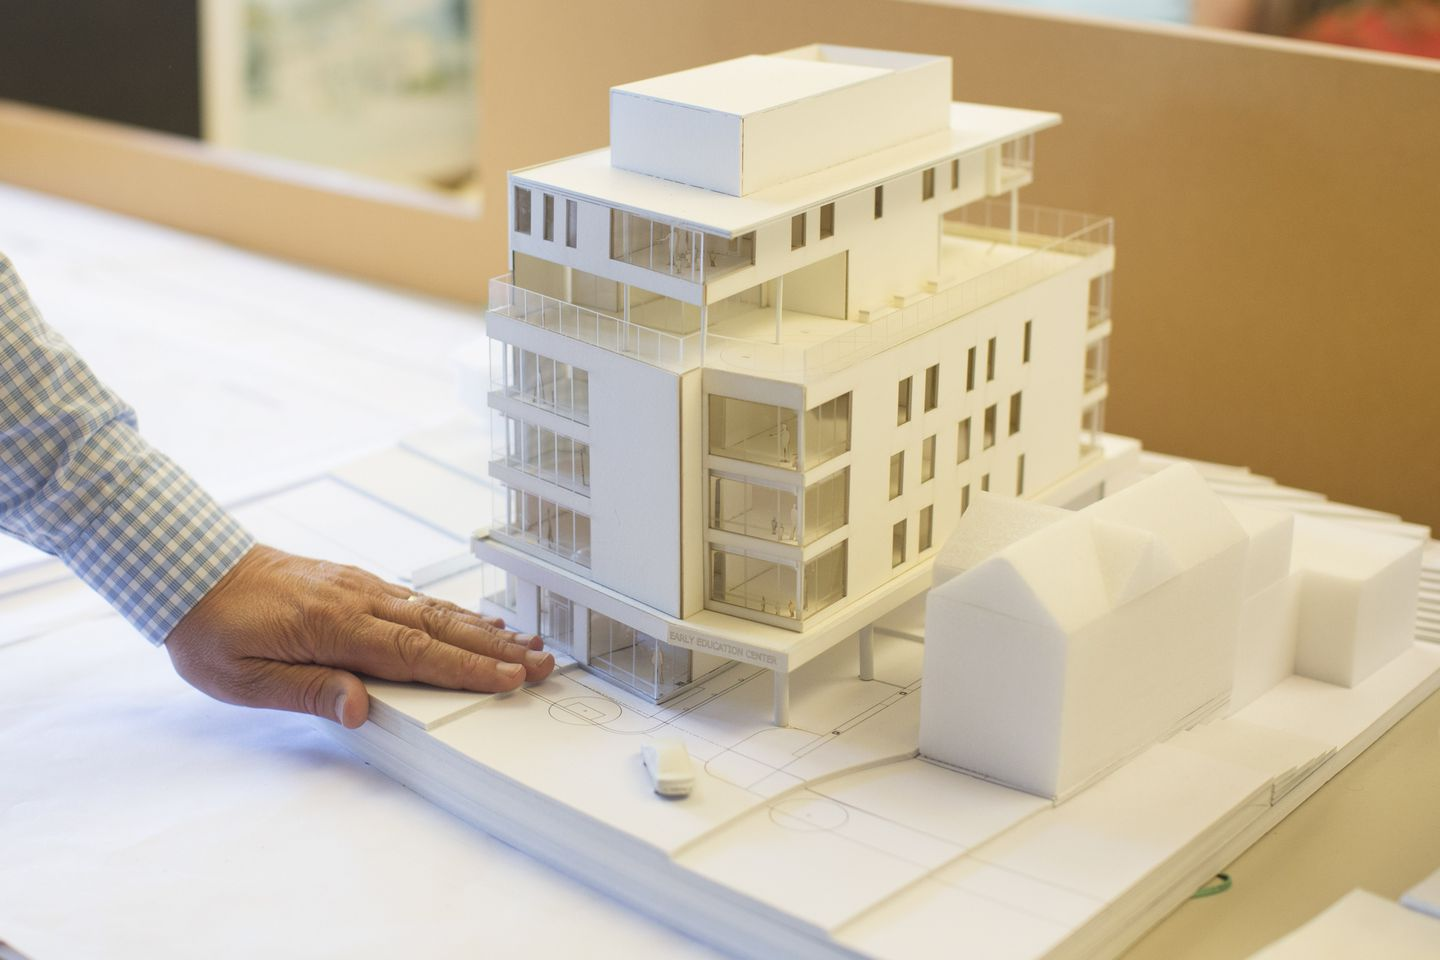 A model of day-care center that will be built in Brookline.